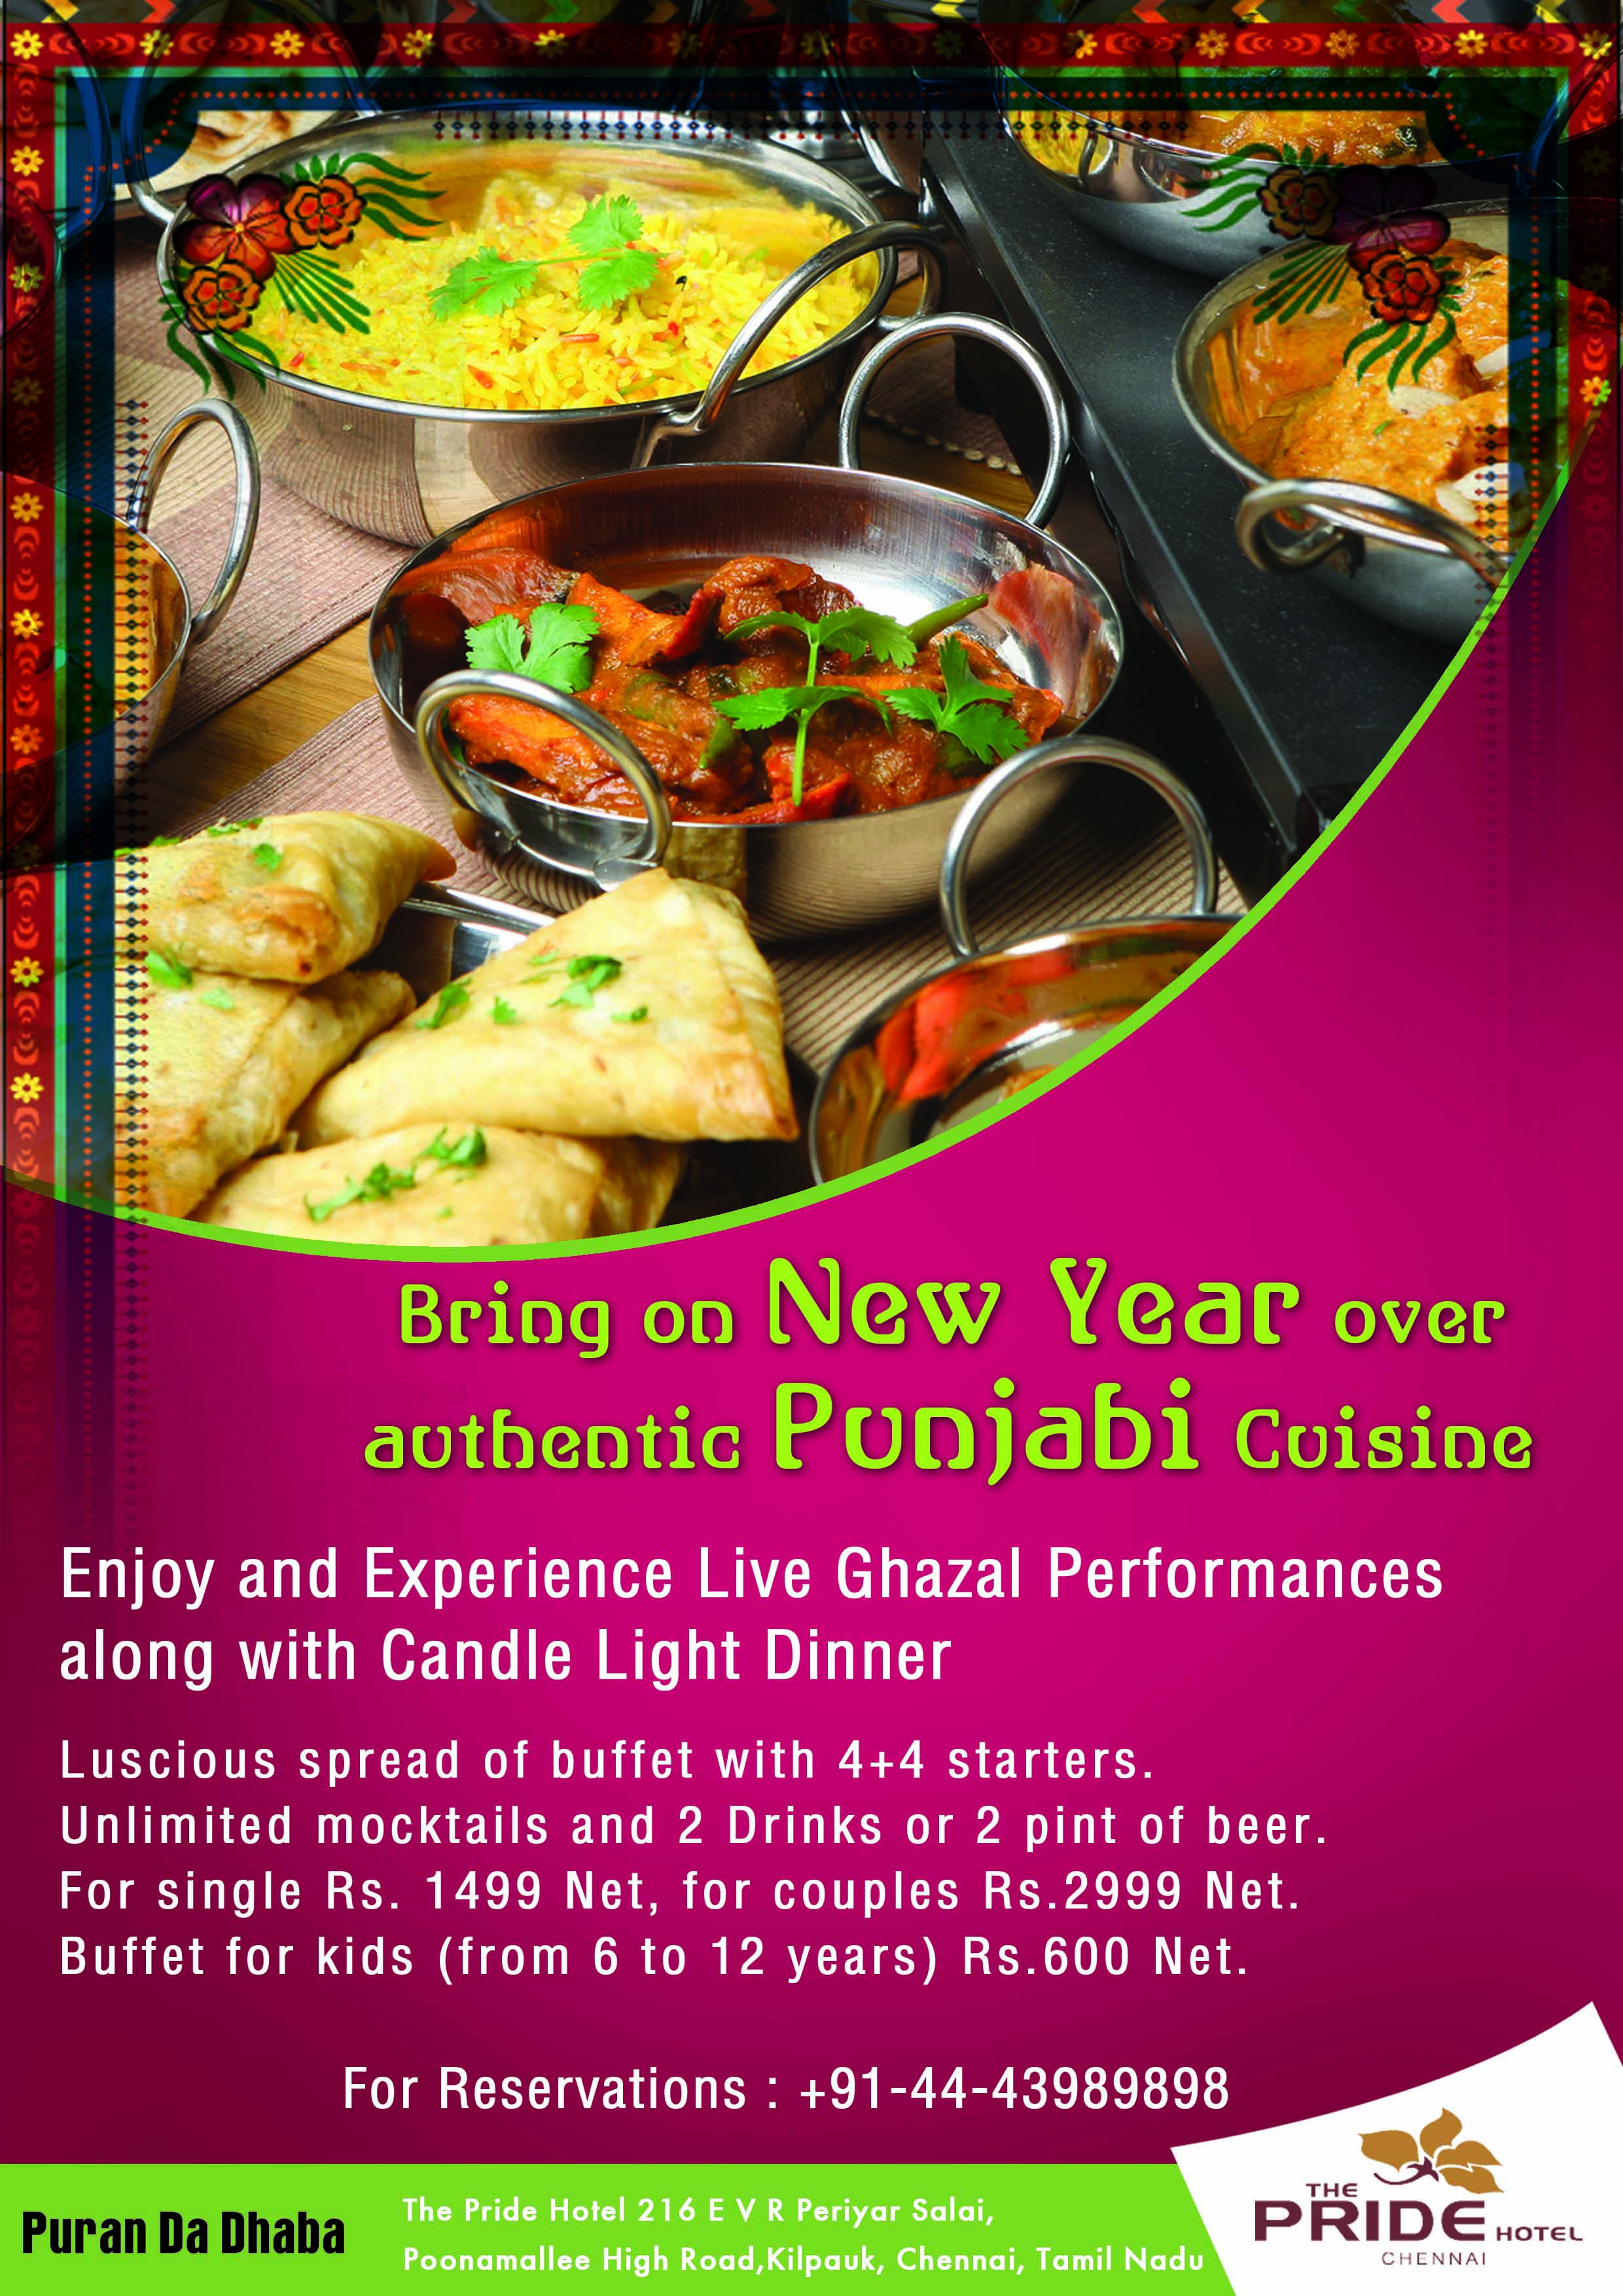 Enjoy Festive Season With Live Gazal Performances Along With Candle Light Dinner Lavish Buffet On 31st Dec Candle Light Dinner Authentic Cuisine Food Festival